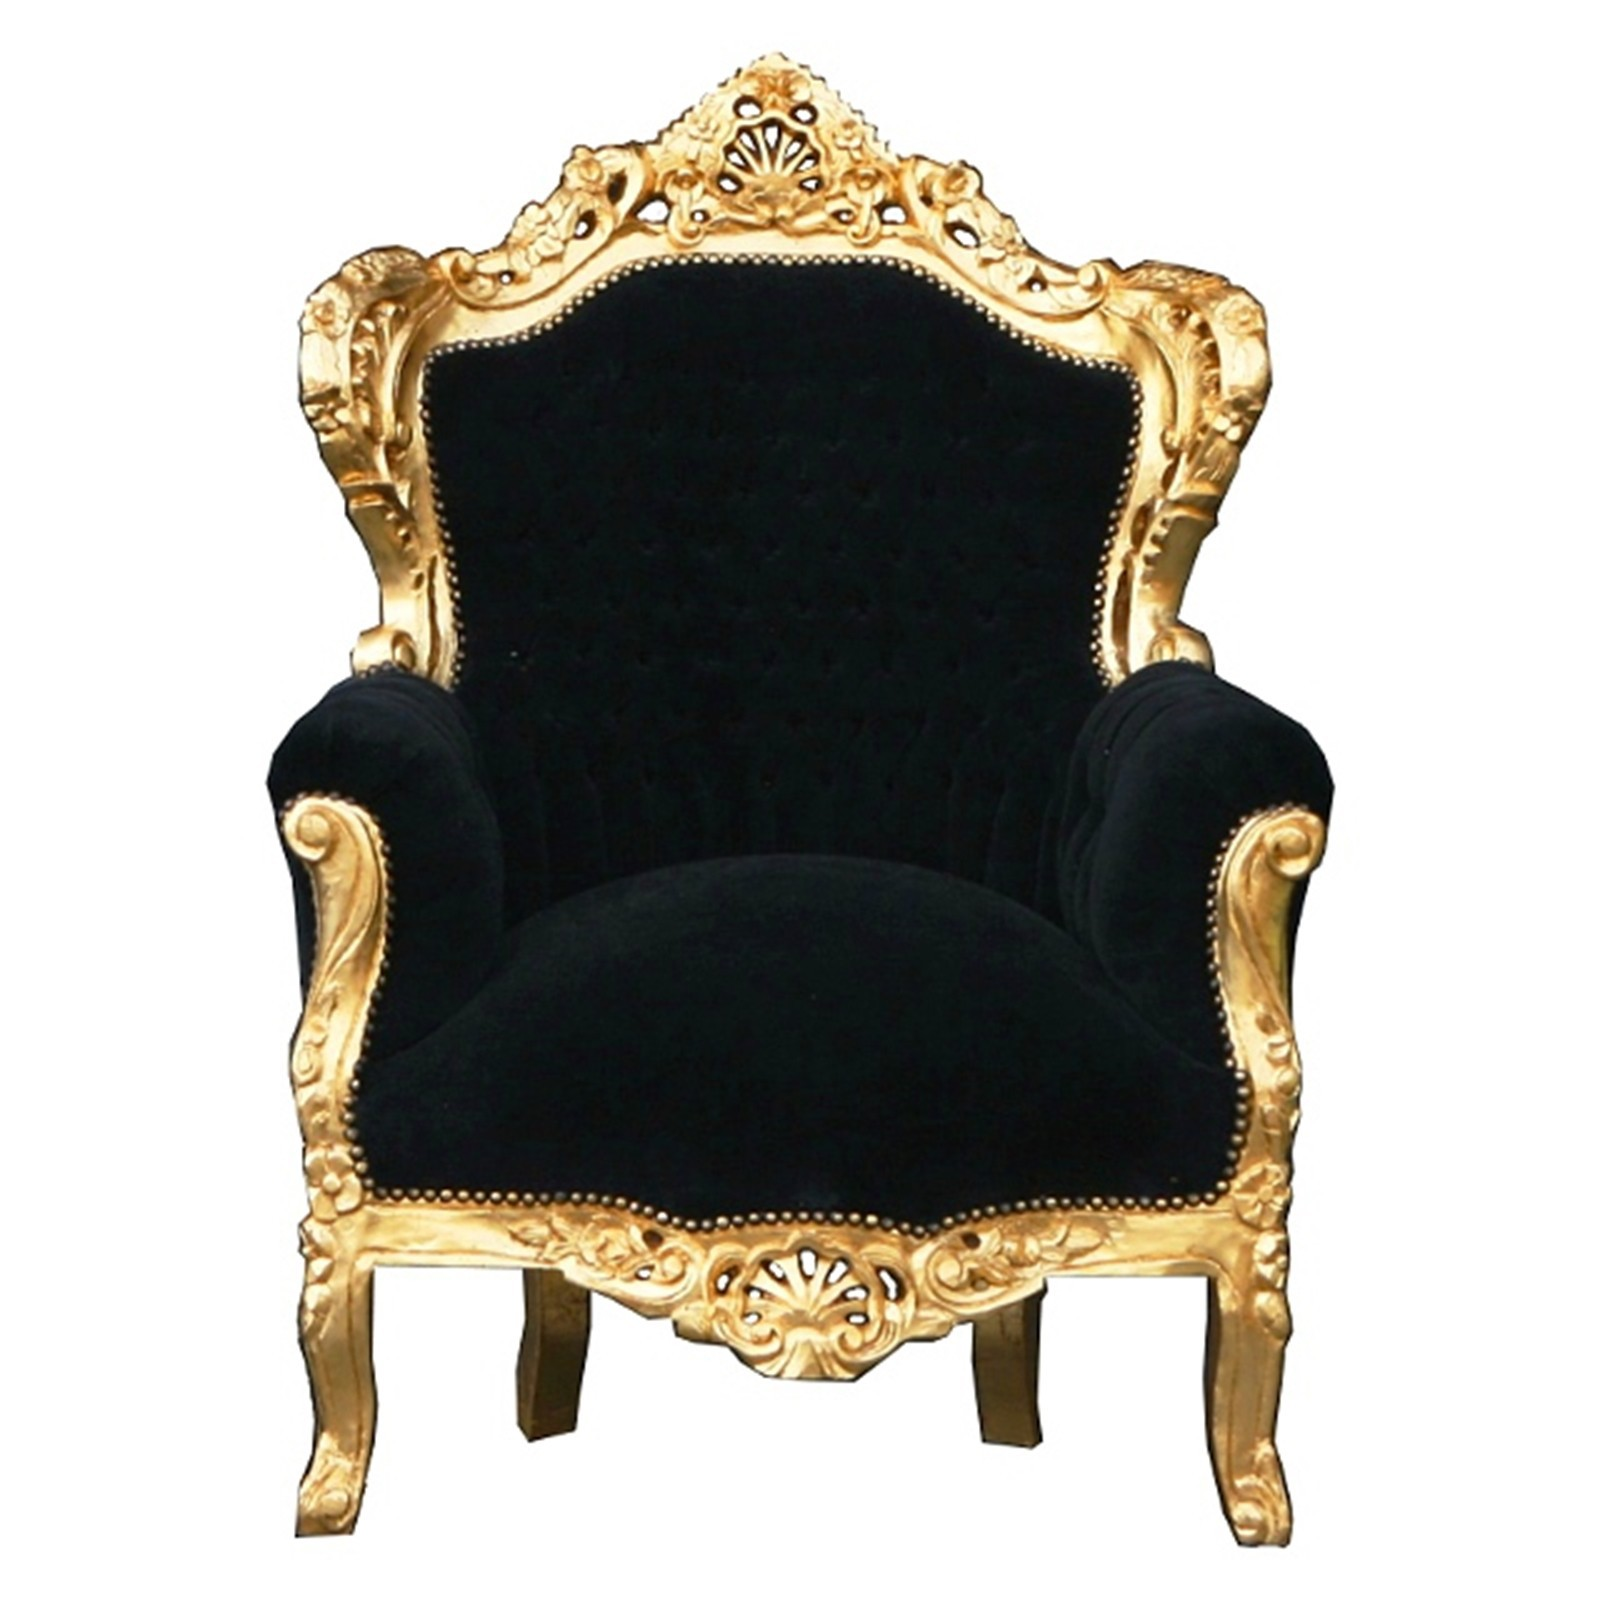 angebot thron schwarz gold k nig barock sessel f rstlich prunk ebay. Black Bedroom Furniture Sets. Home Design Ideas